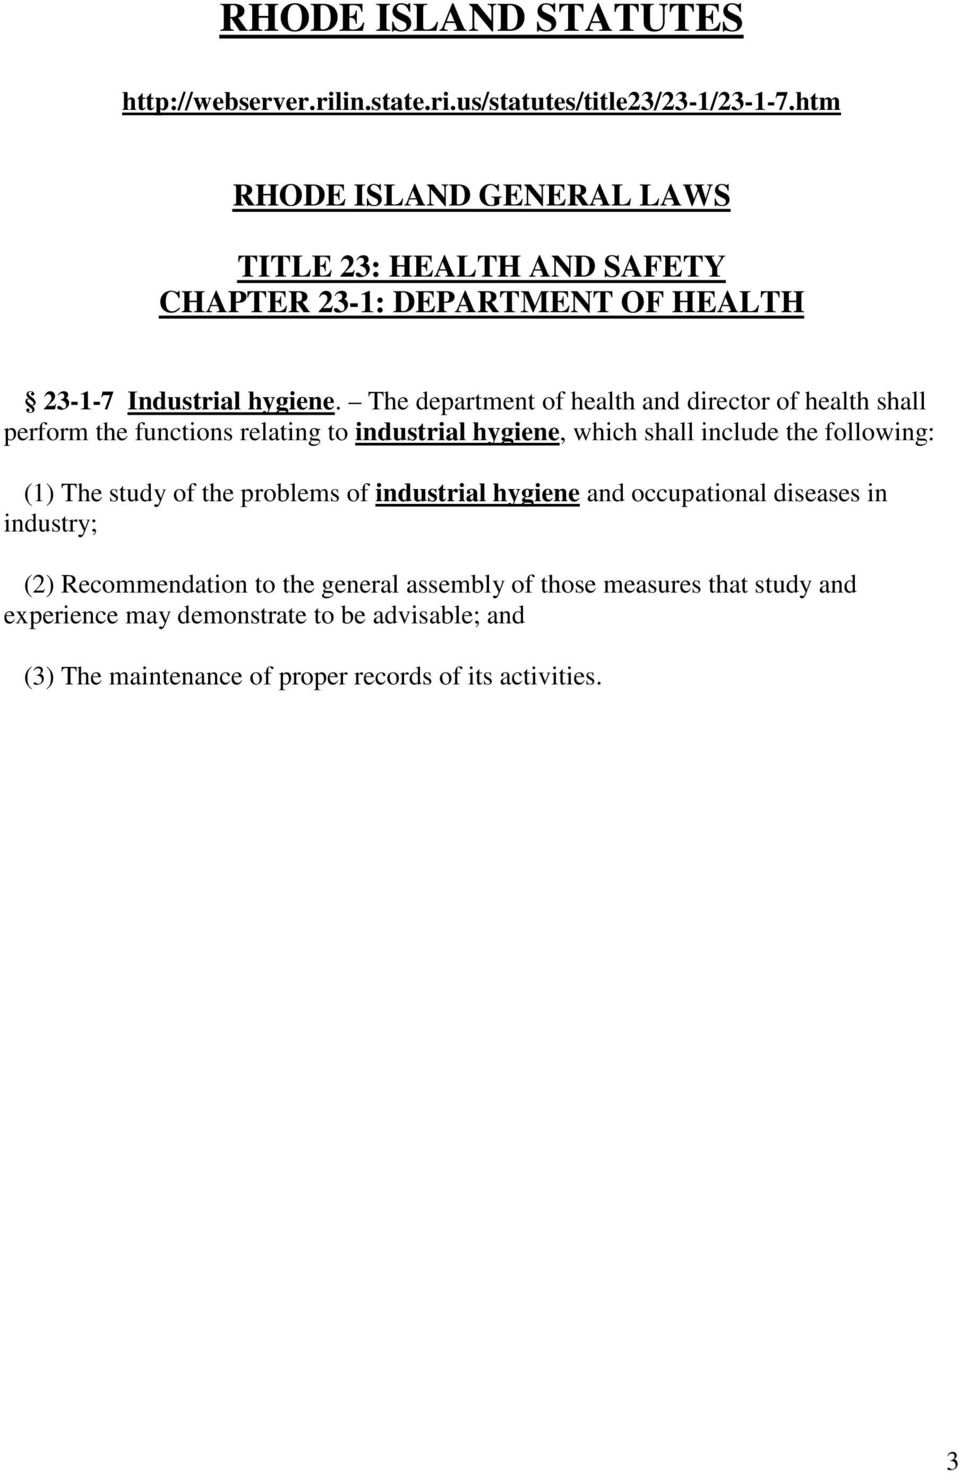 The department of health and director of health shall perform the functions relating to industrial hygiene, which shall include the following: (1) The